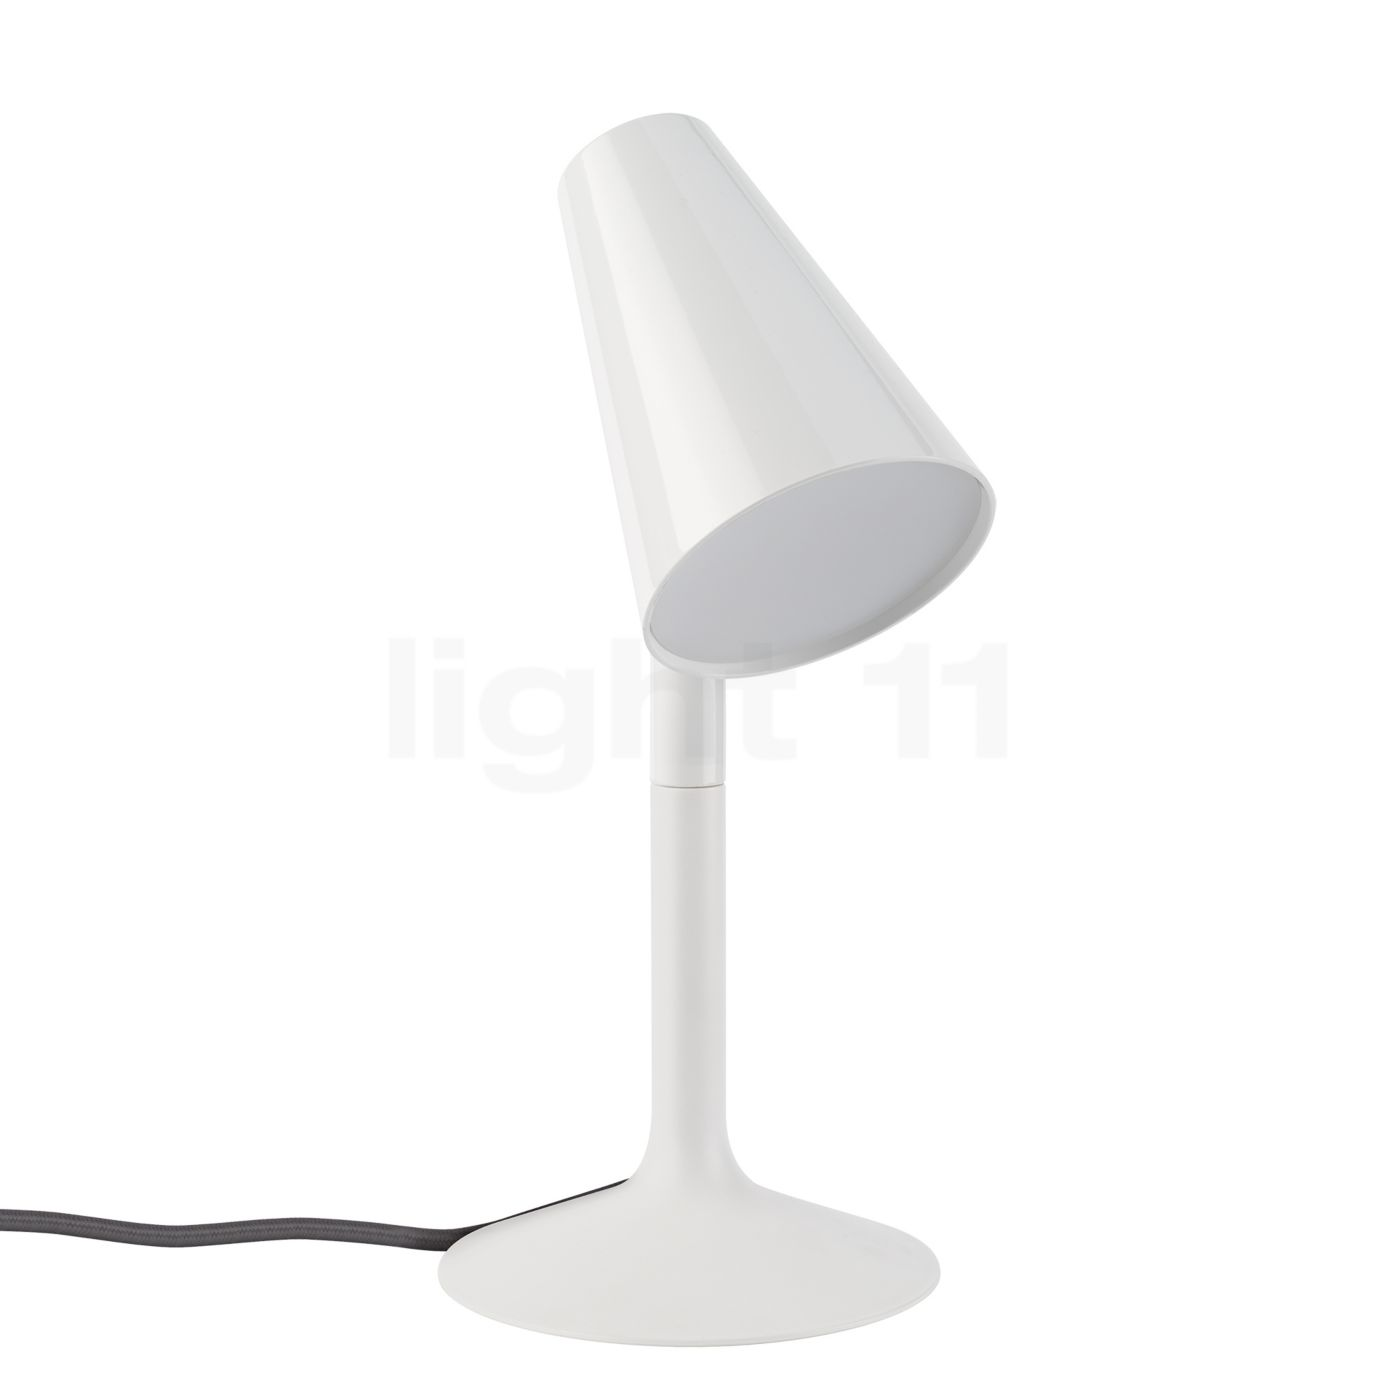 Philips piculet table lamp led reading lights light11 parisarafo Choice Image